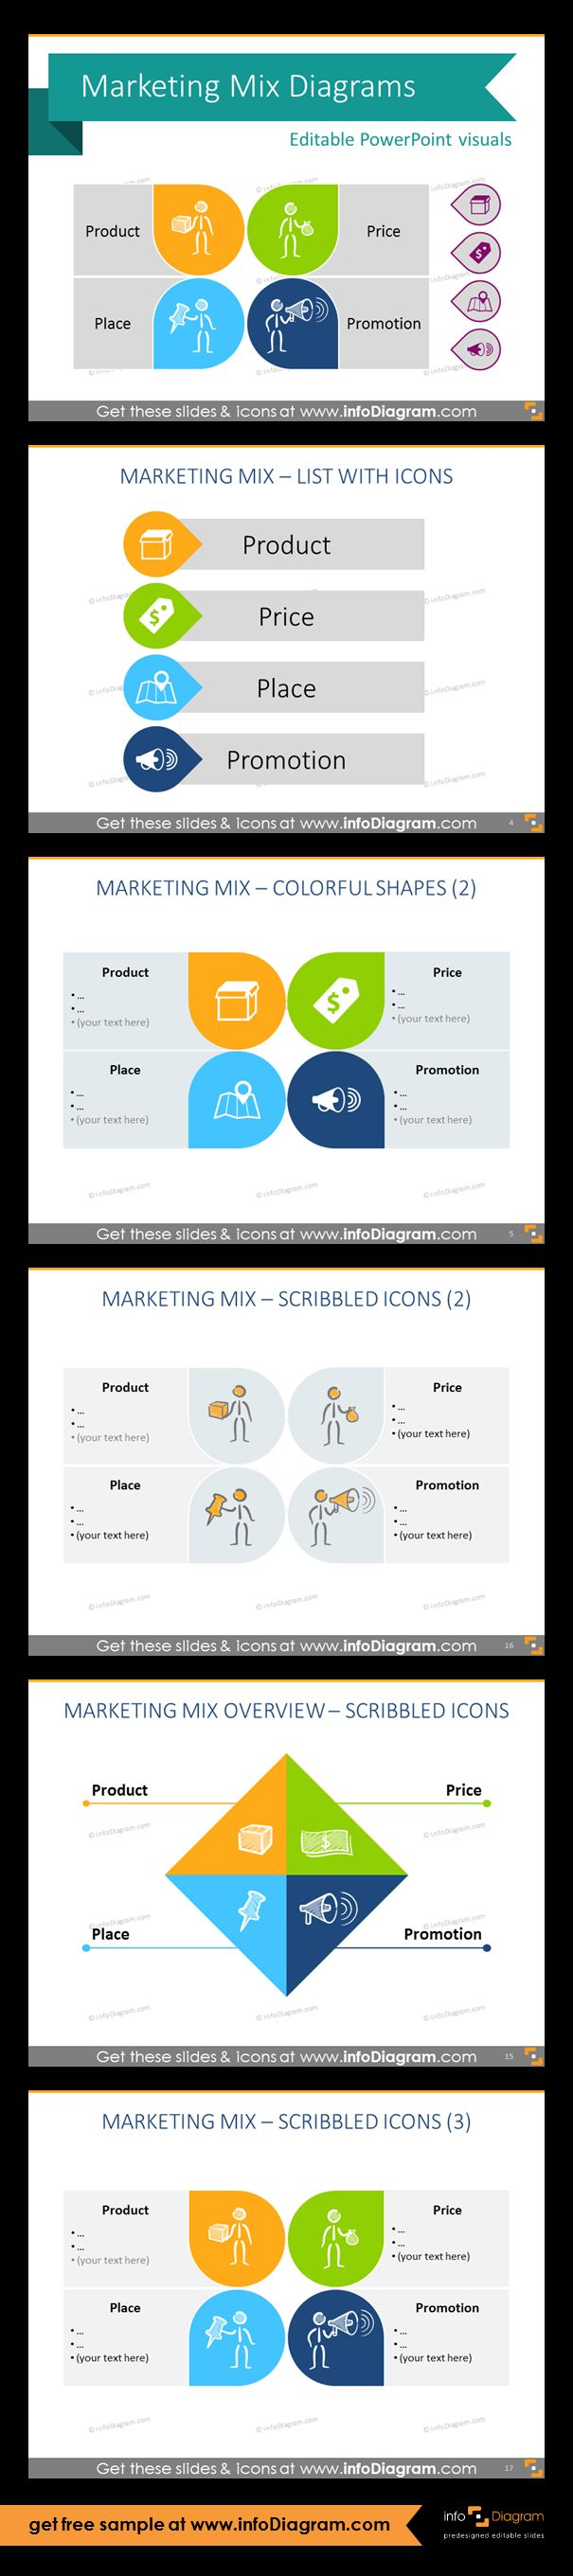 Collection of Marketing Mix framework template and icons as pre-designed PowerPoint slides. 4P of marketing overview variations: colorful shapes, scribble icons. Fully editable style. Size and colors easy to adjust using PowerPoint editor. Presentation template suitable for marketing and strategy planning presentations.